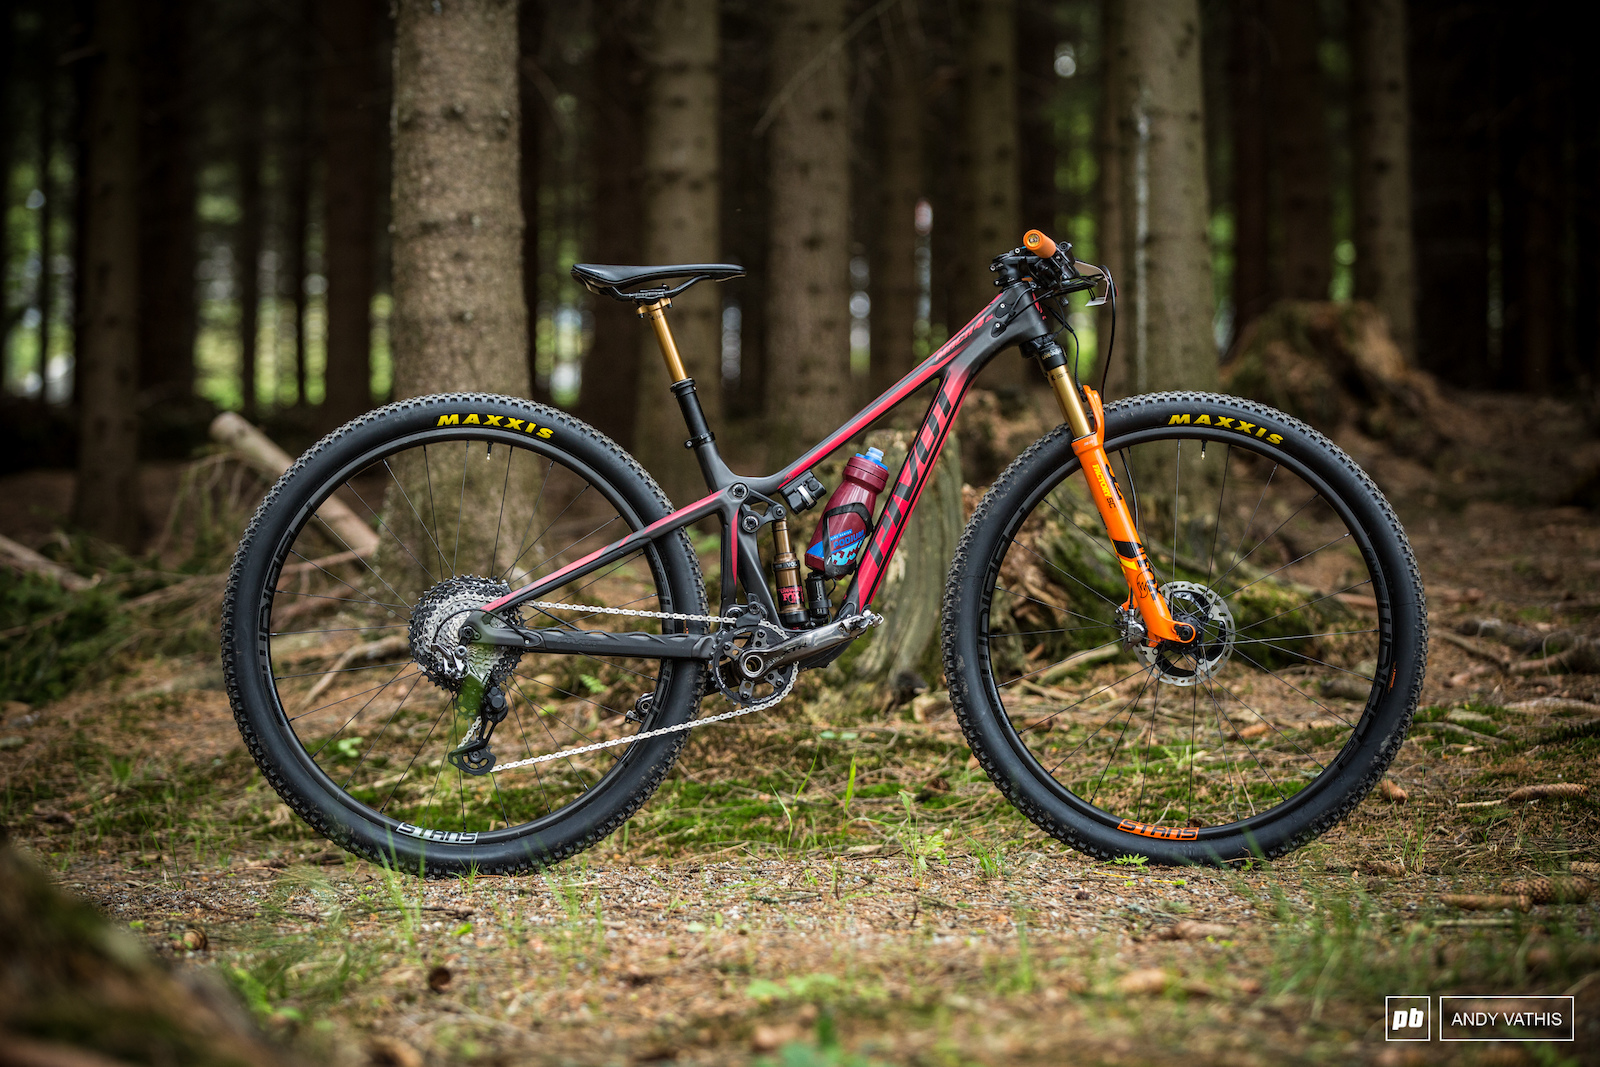 2ec7c50e8 5 XC Race Weapons from the 2019 Nove Mesto World Cup - Pinkbike